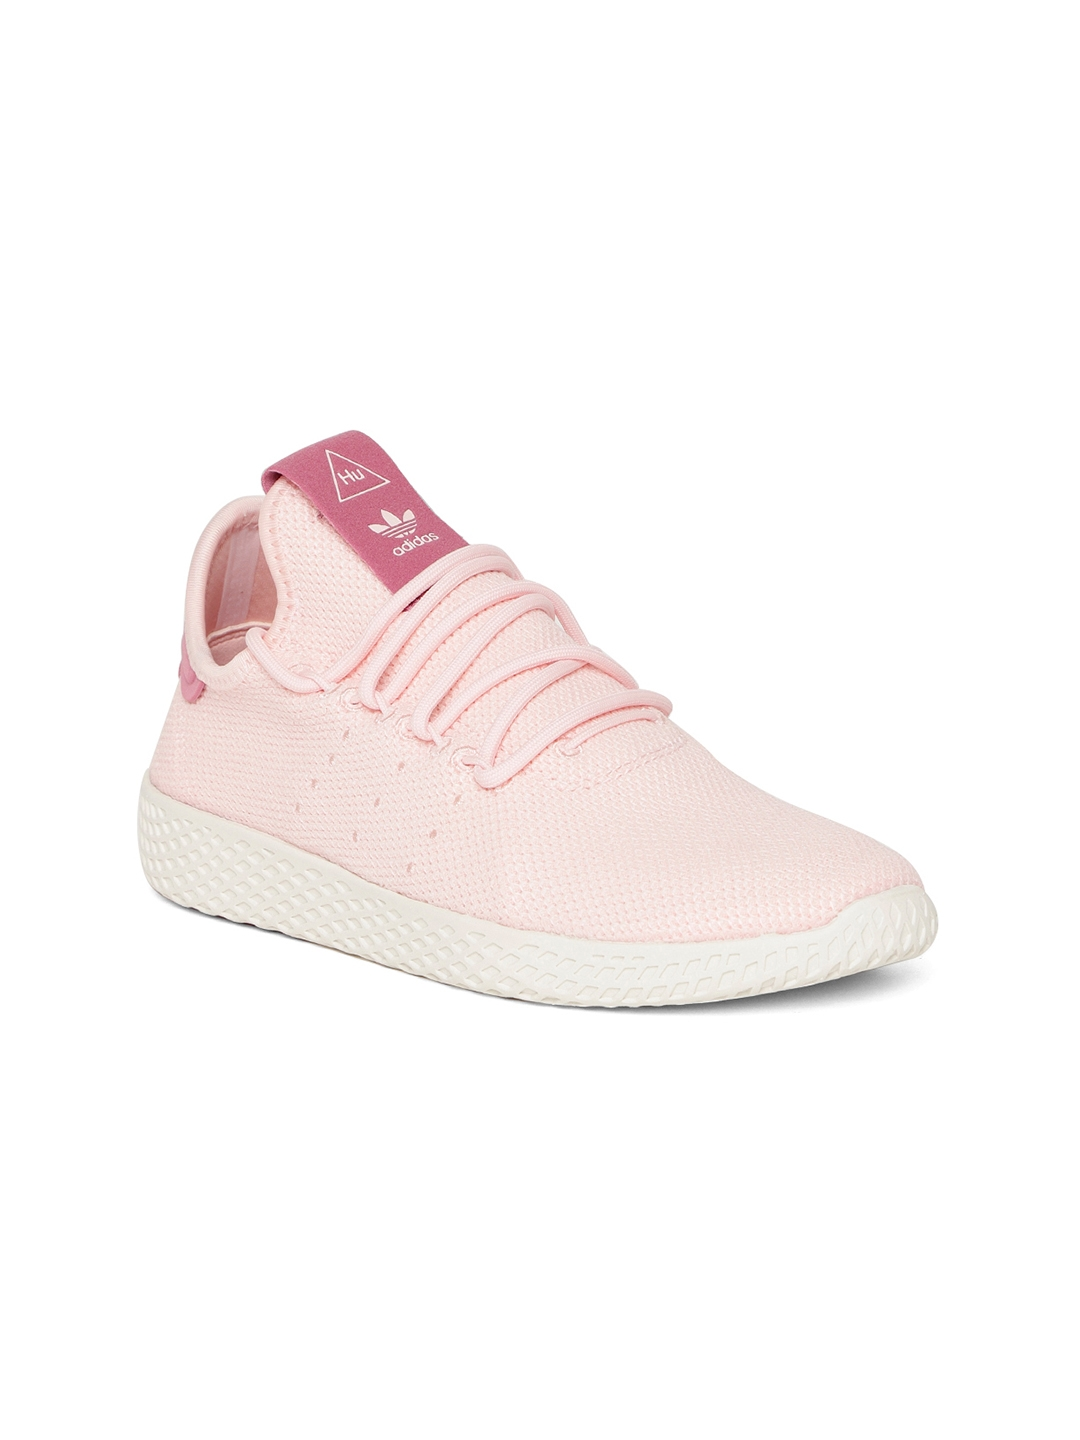 detailed look 826d0 1b2f0 ADIDAS Originals Women Pink Pharrell Williams Tennis HU Sneakers